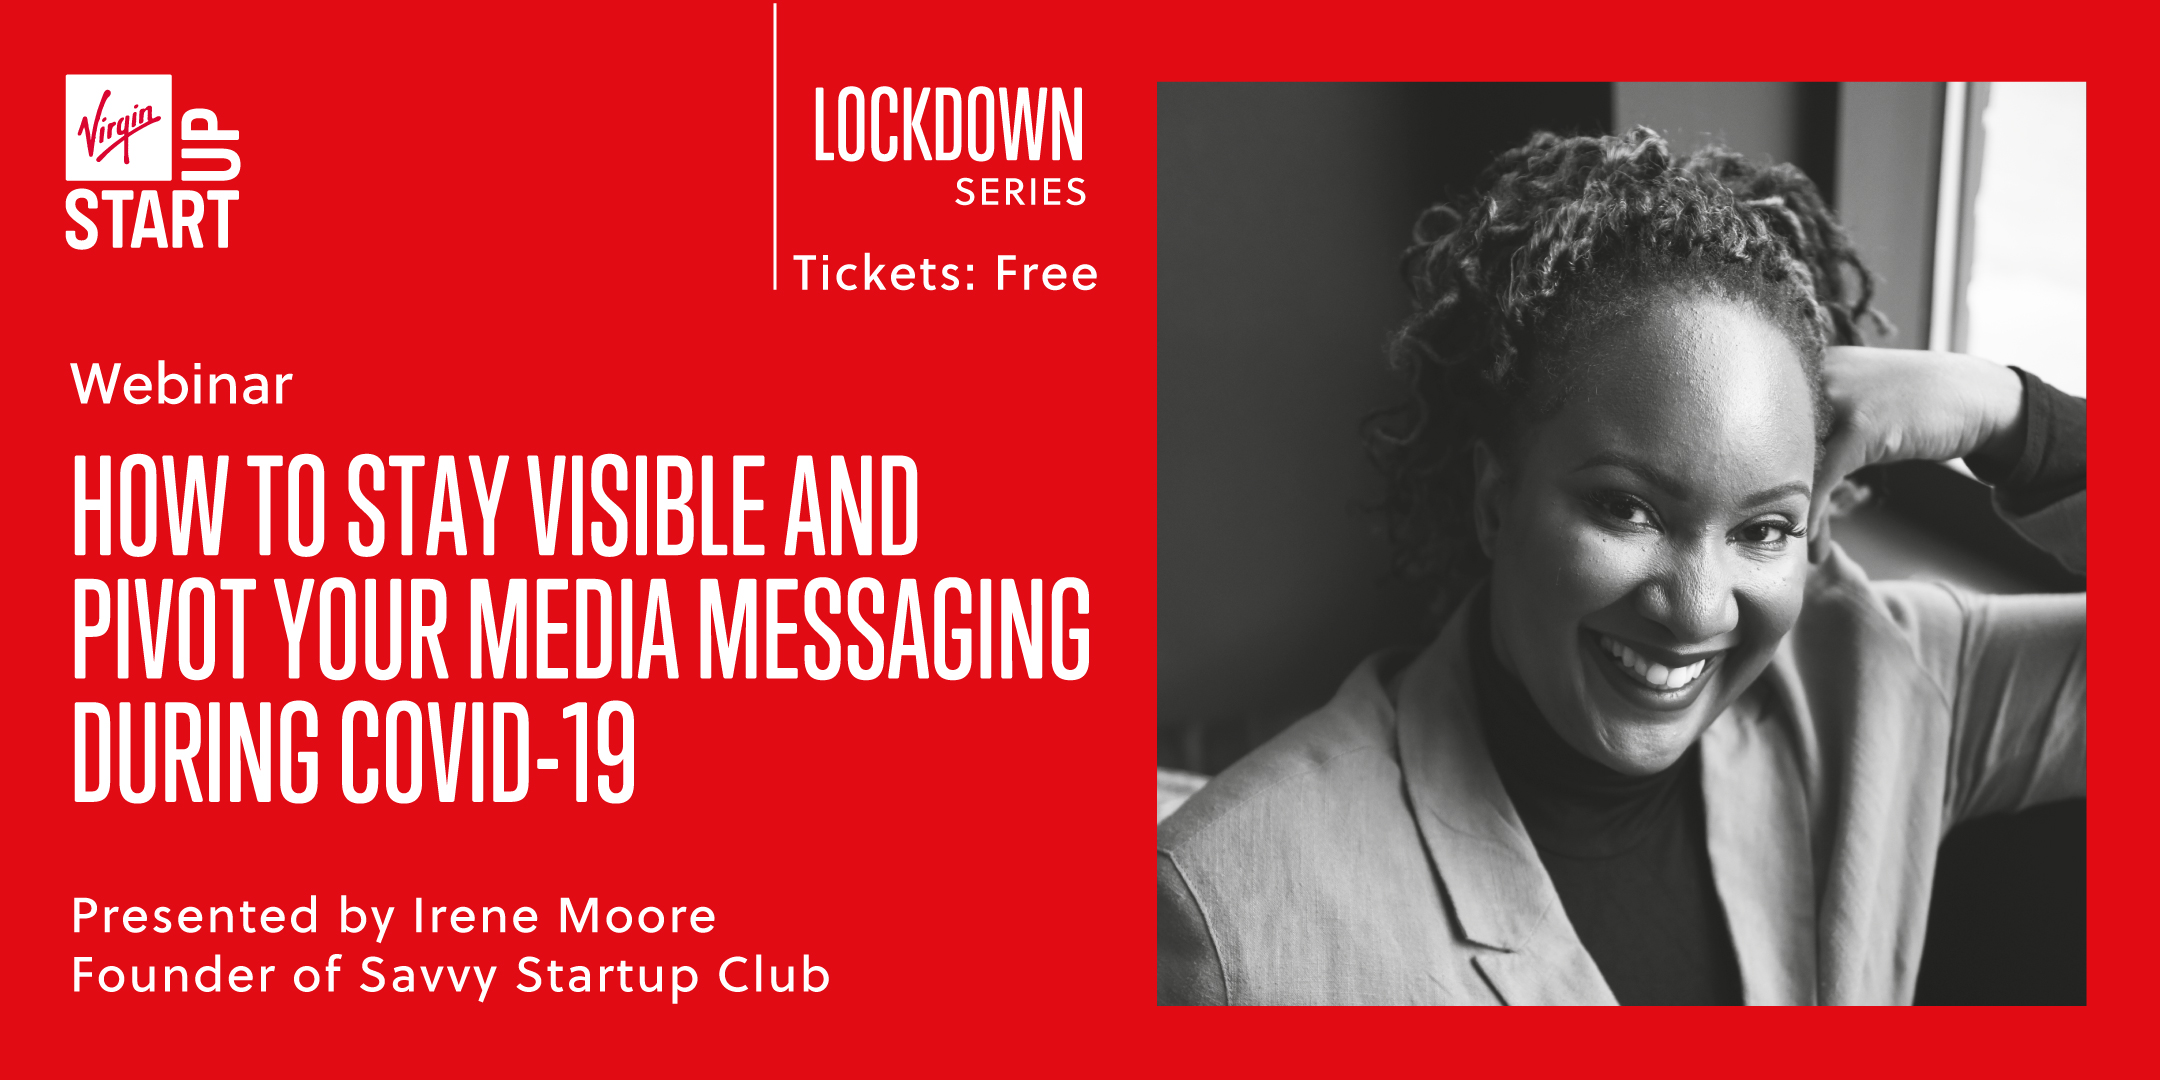 Lockdown series webinar with Irene Moore